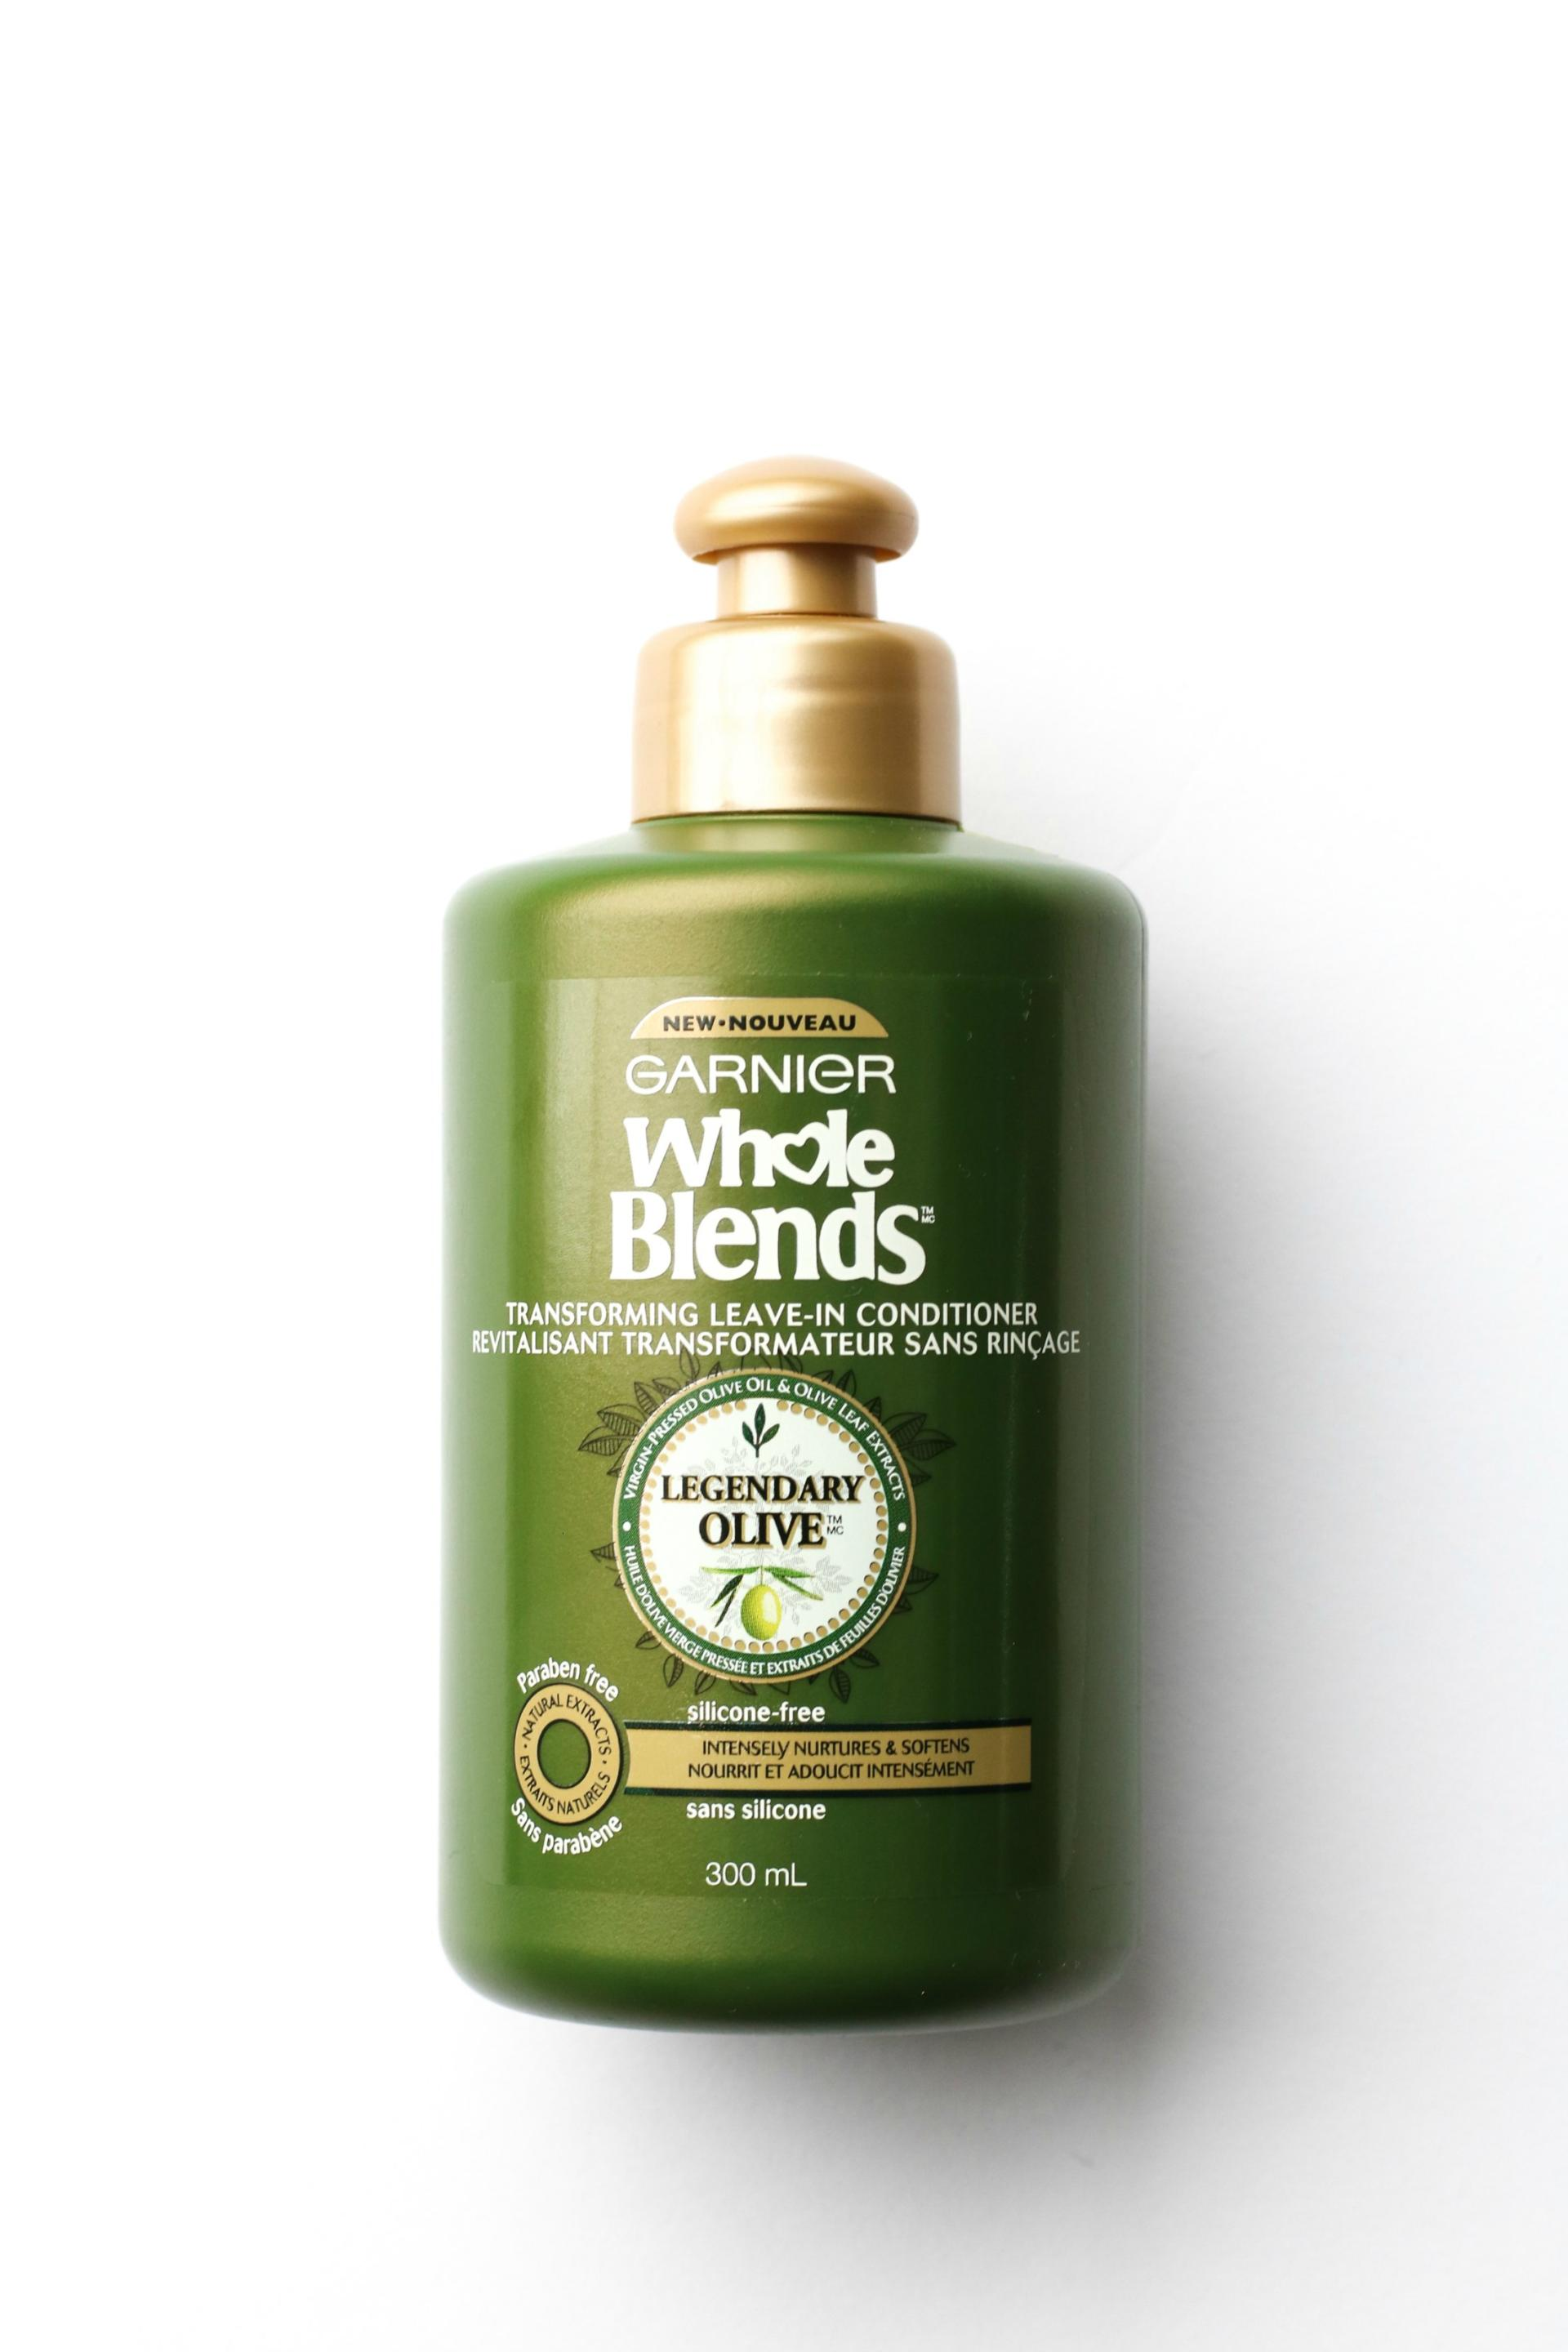 Protective Hair Styles: Everything You Need To Know   Garnier Whole Blends Legendary Olive